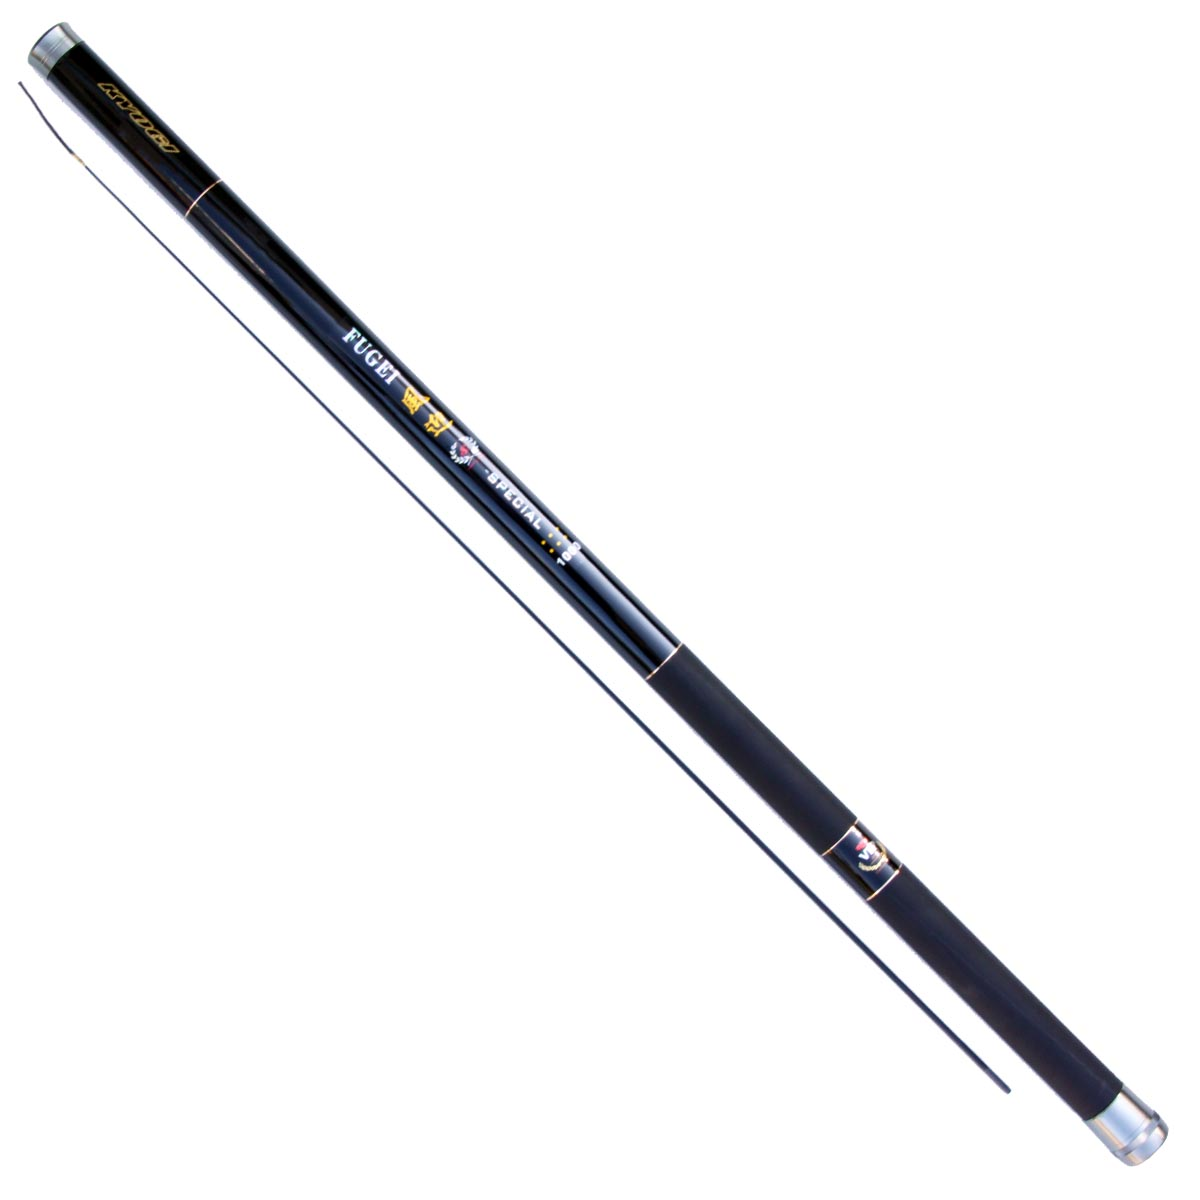 Adjusts carbon mountain Rod wind welcomed 1,000 9 5 m approx  573 Lillian g  rotary heads